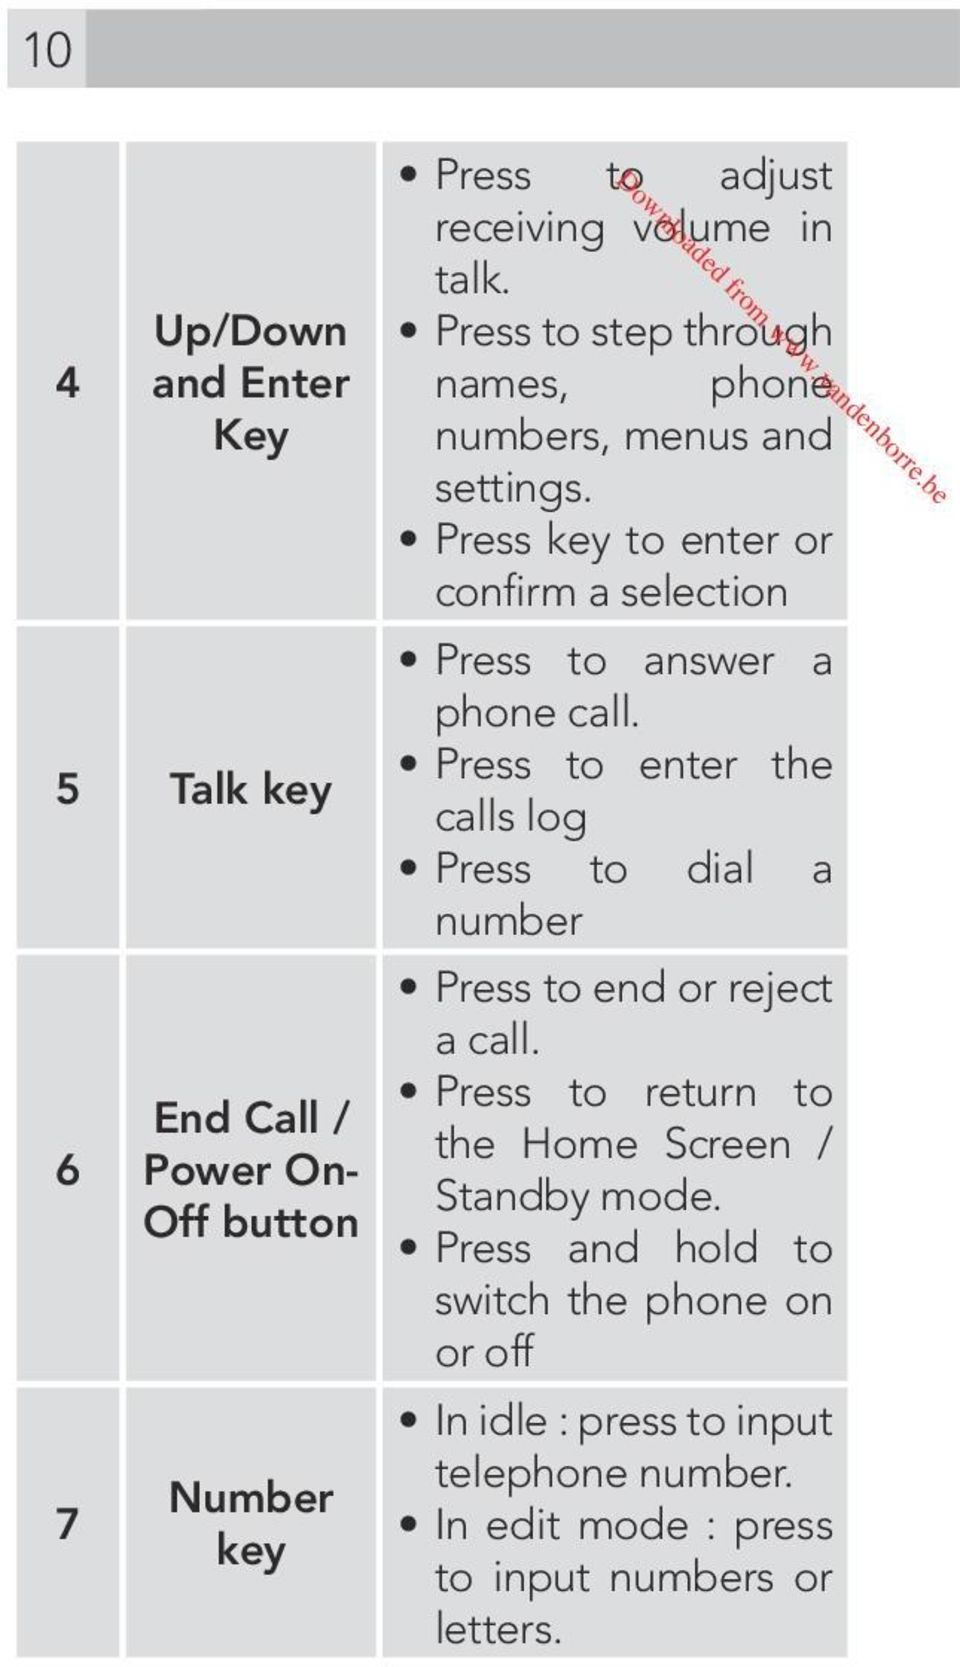 Press key to enter or confirm a selection Press to answer a phone call.